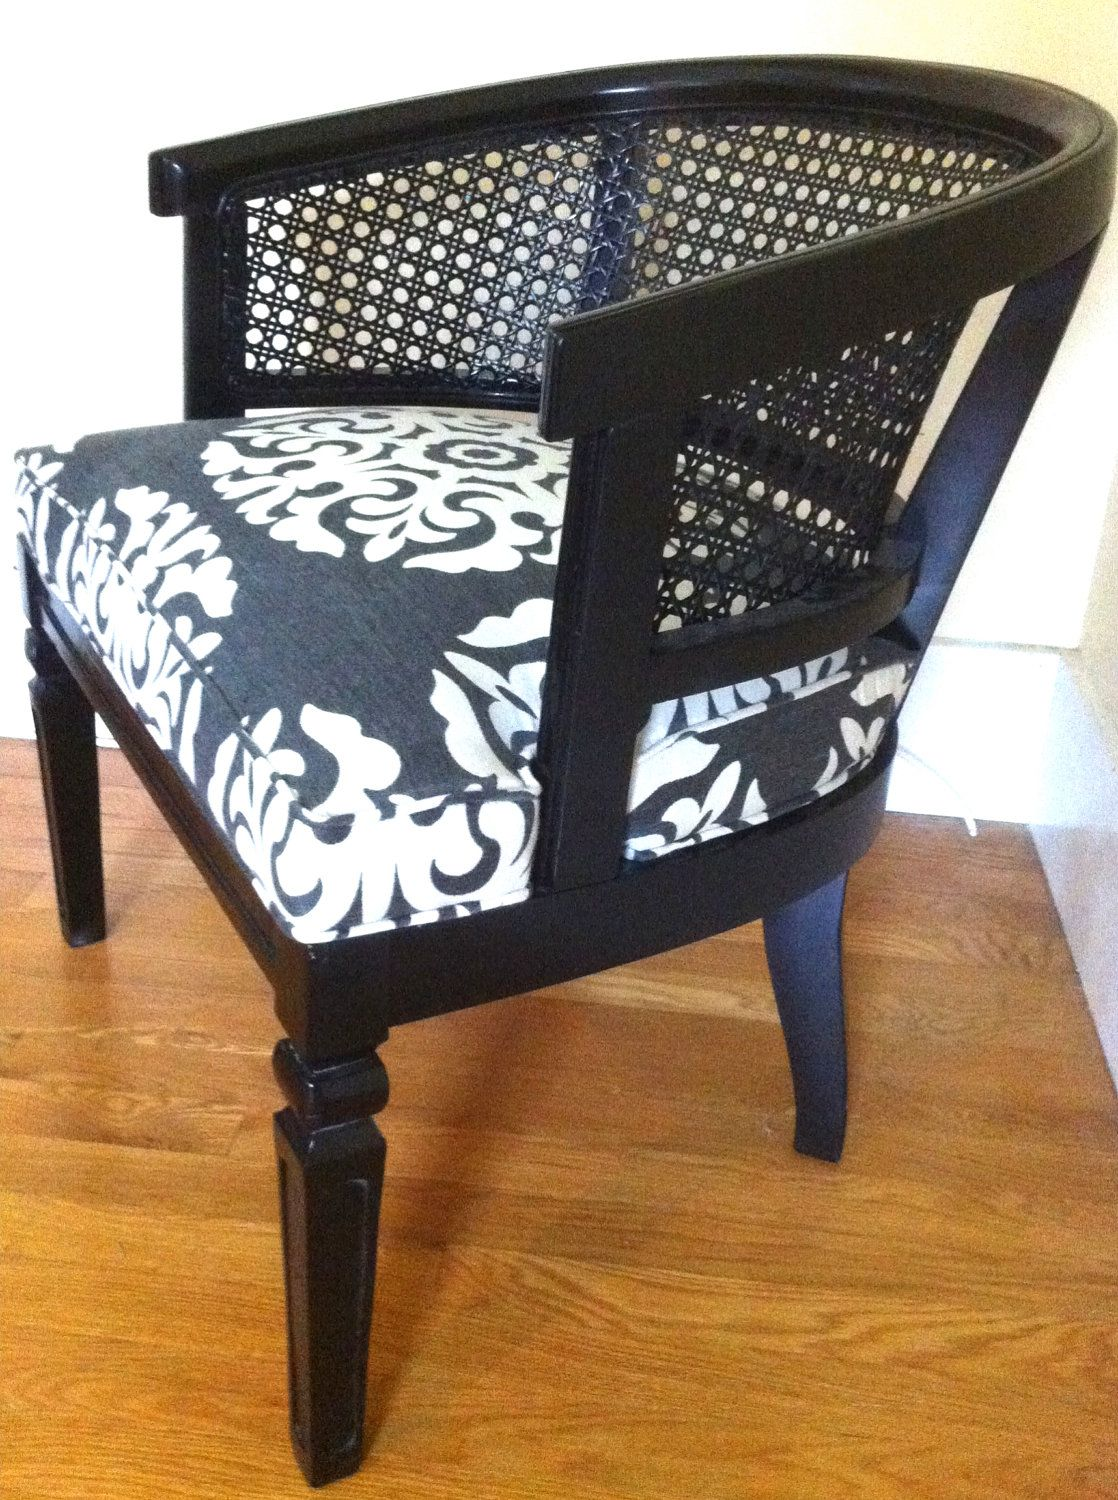 black barrel chair nursery with ottoman i bet could do this the kohl a caned